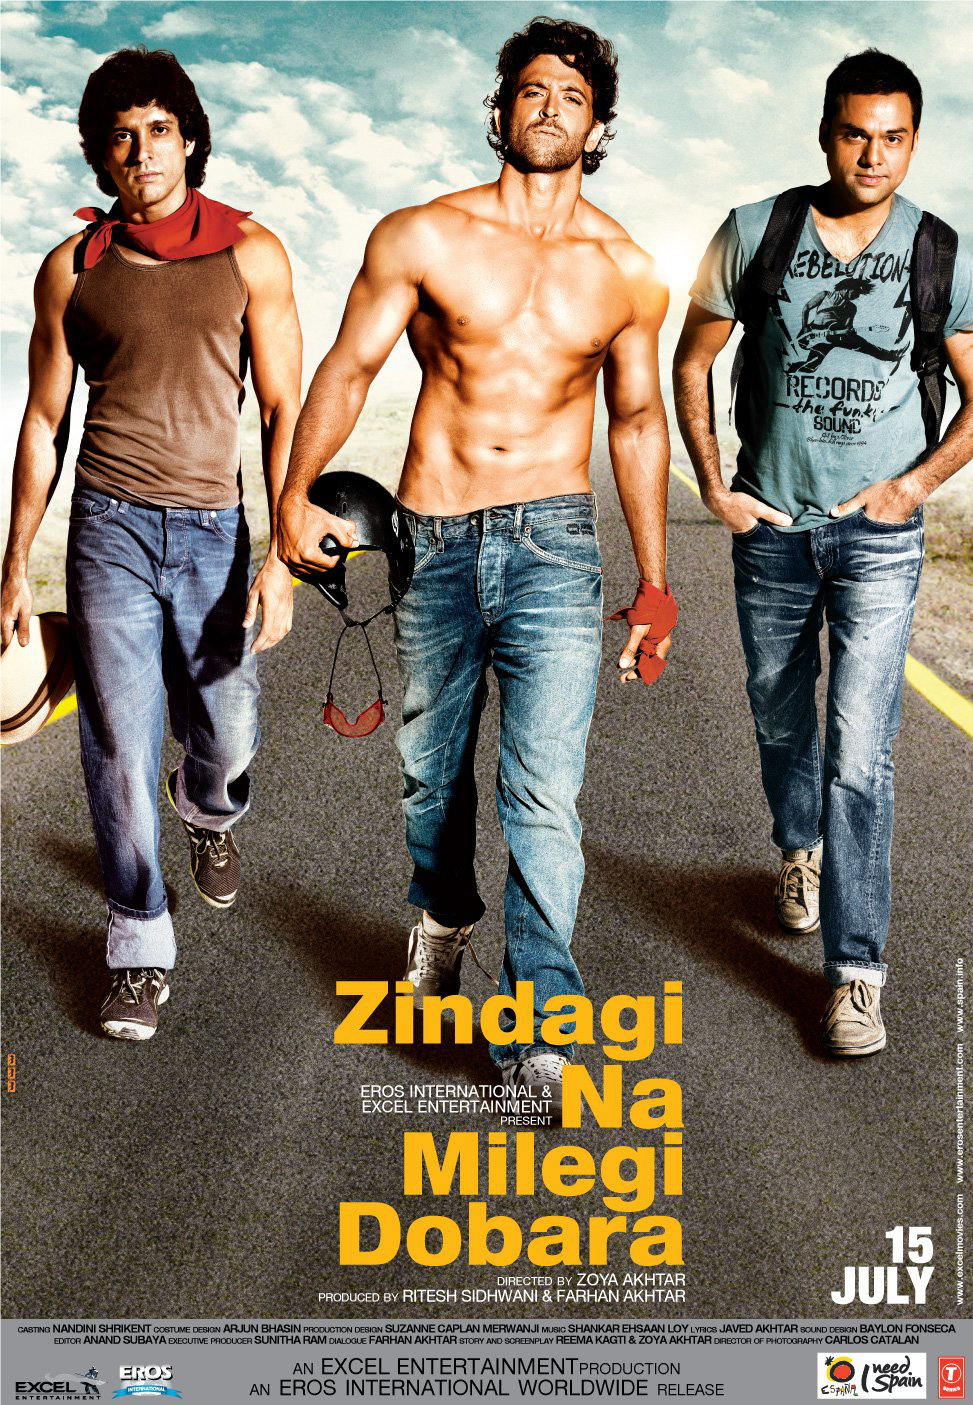 Zindagi na milegi doobara poster is copied from Lords of dogtown